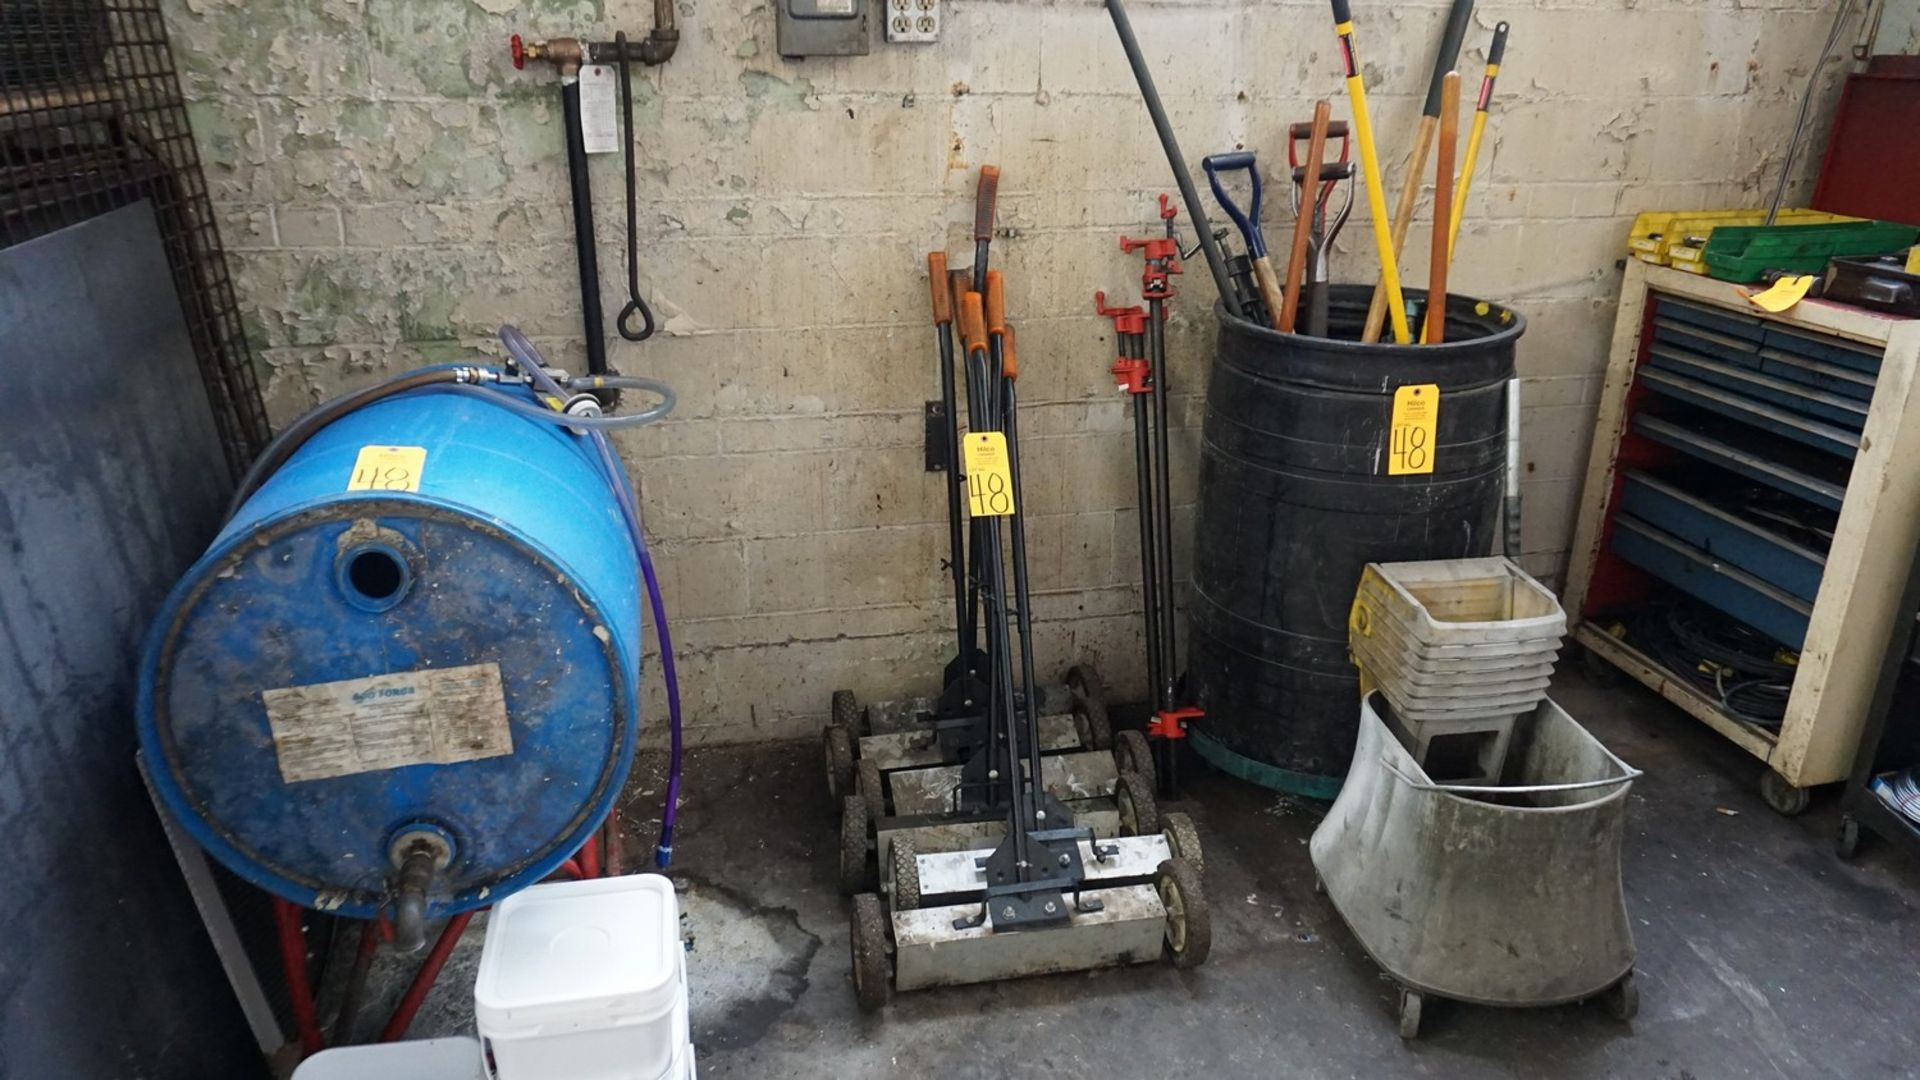 Lot 48 - Lot of Asst. Bar Clamps, Brooms, Shovels, Magnets